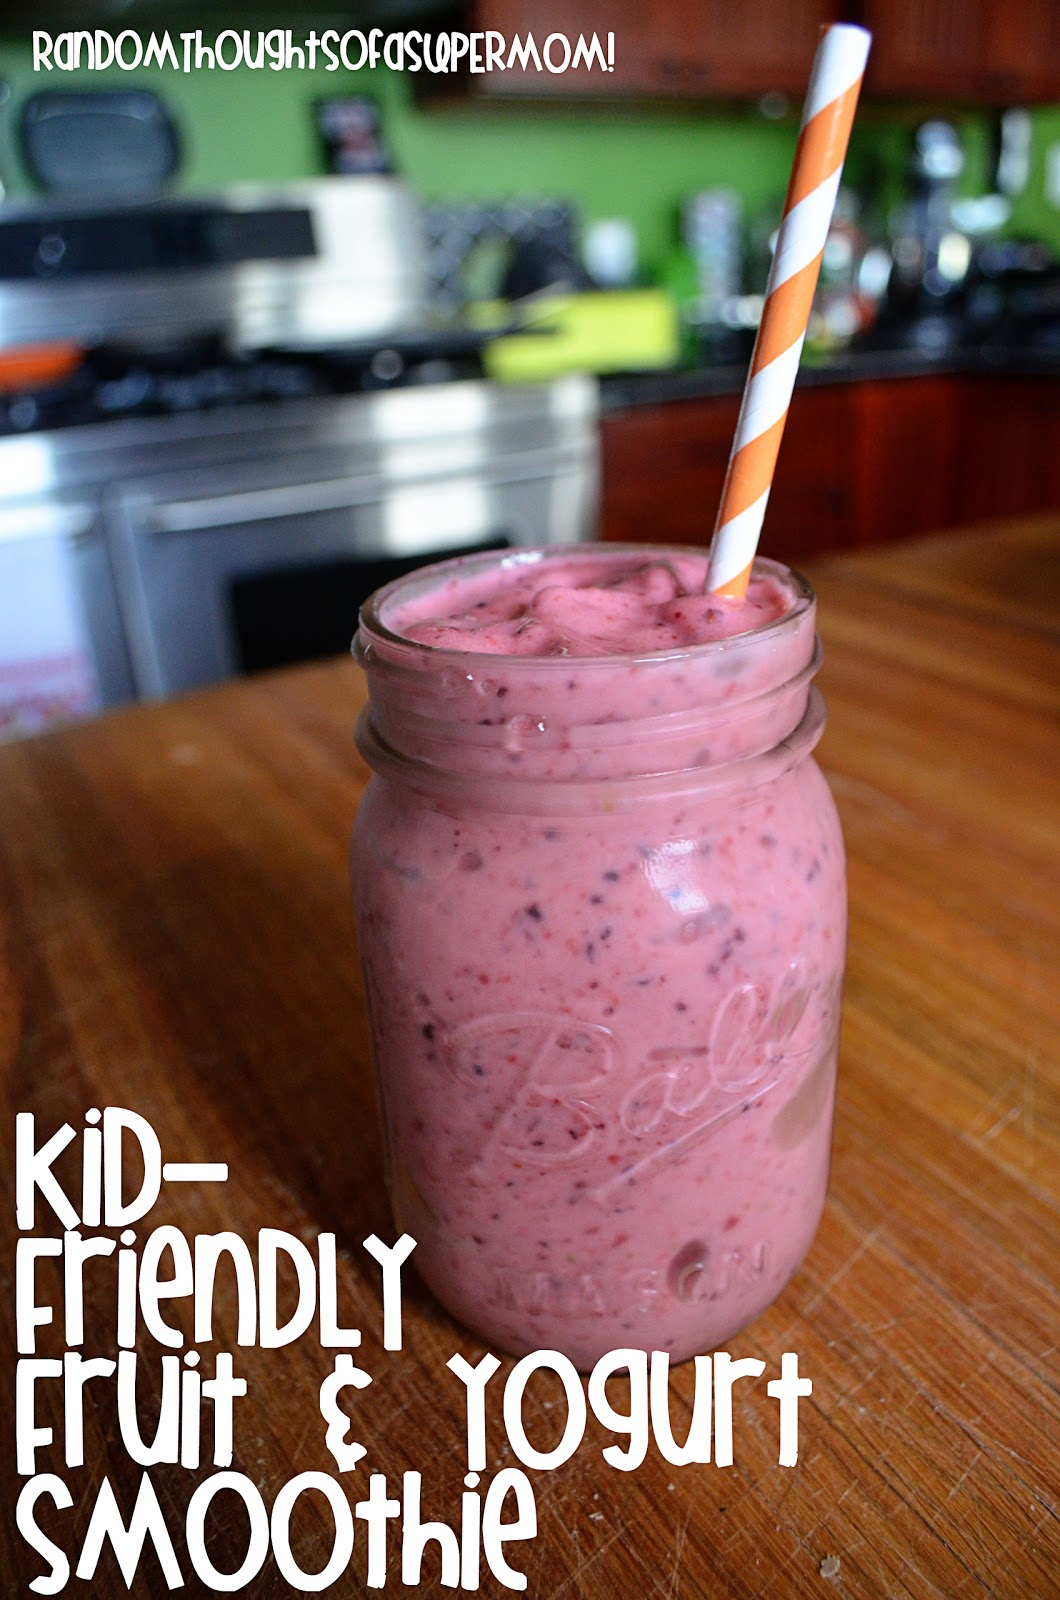 ... Thoughts of a SUPERMOM!*: Kid-Friendly Fruit and Yogurt Smoothie